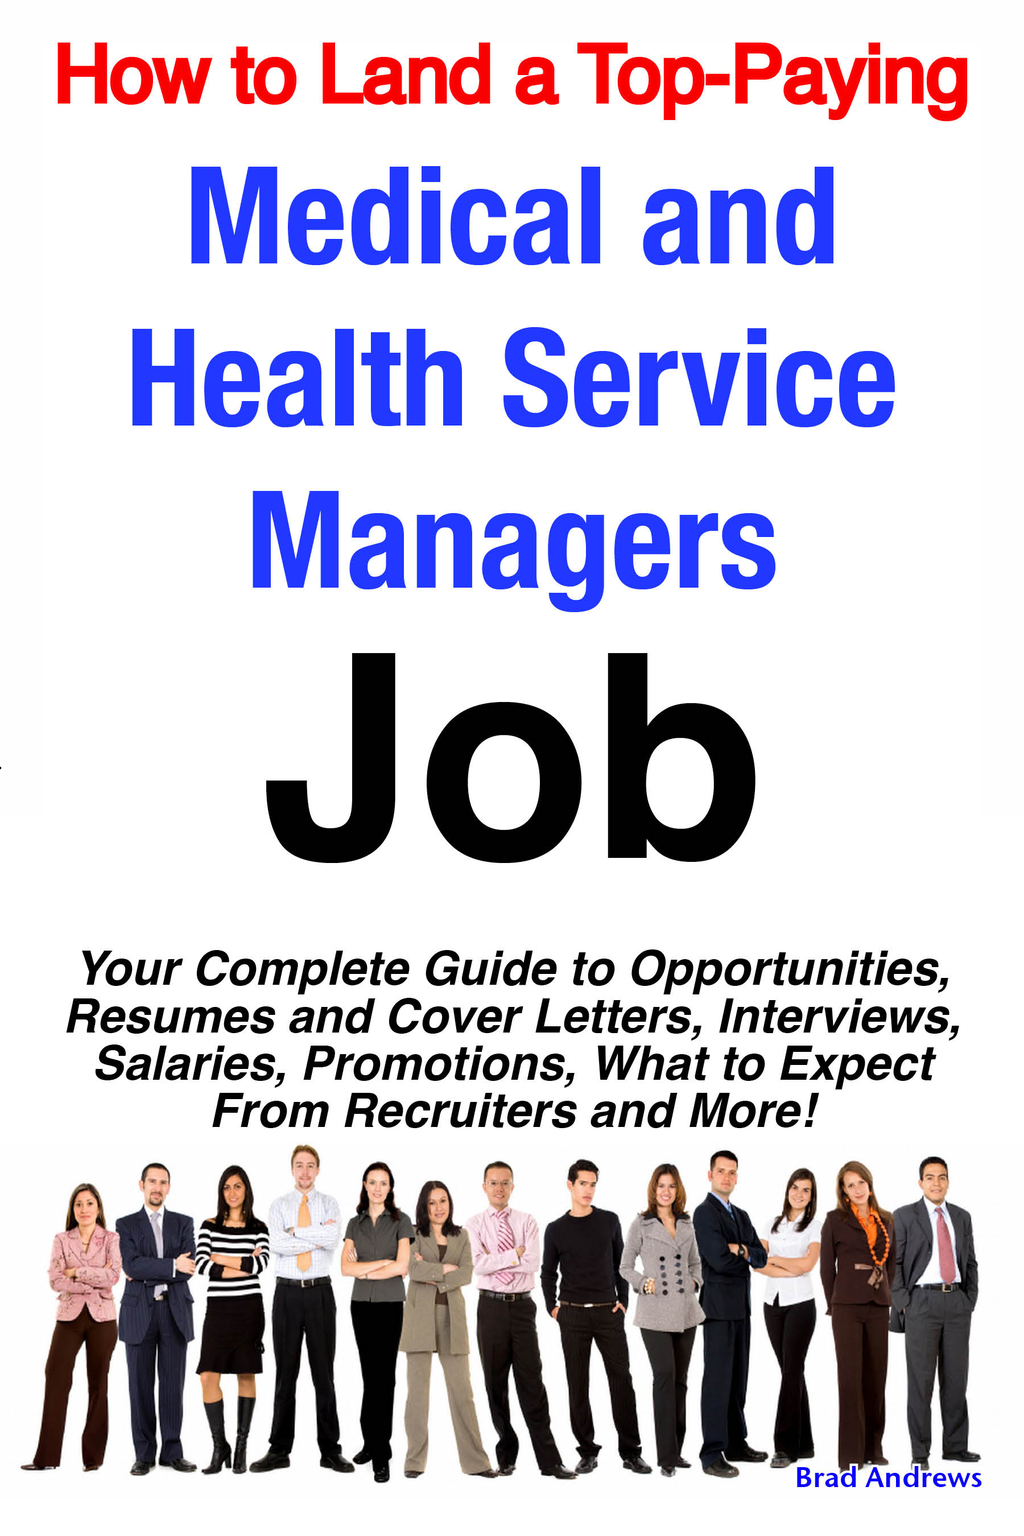 How to Land a Top-Paying Medical and Health Service Managers Job: Your Complete Guide to Opportunities, Resumes and Cover Letters, Interviews, Salaries, Promotions, What to Expect From Recruiters and More!